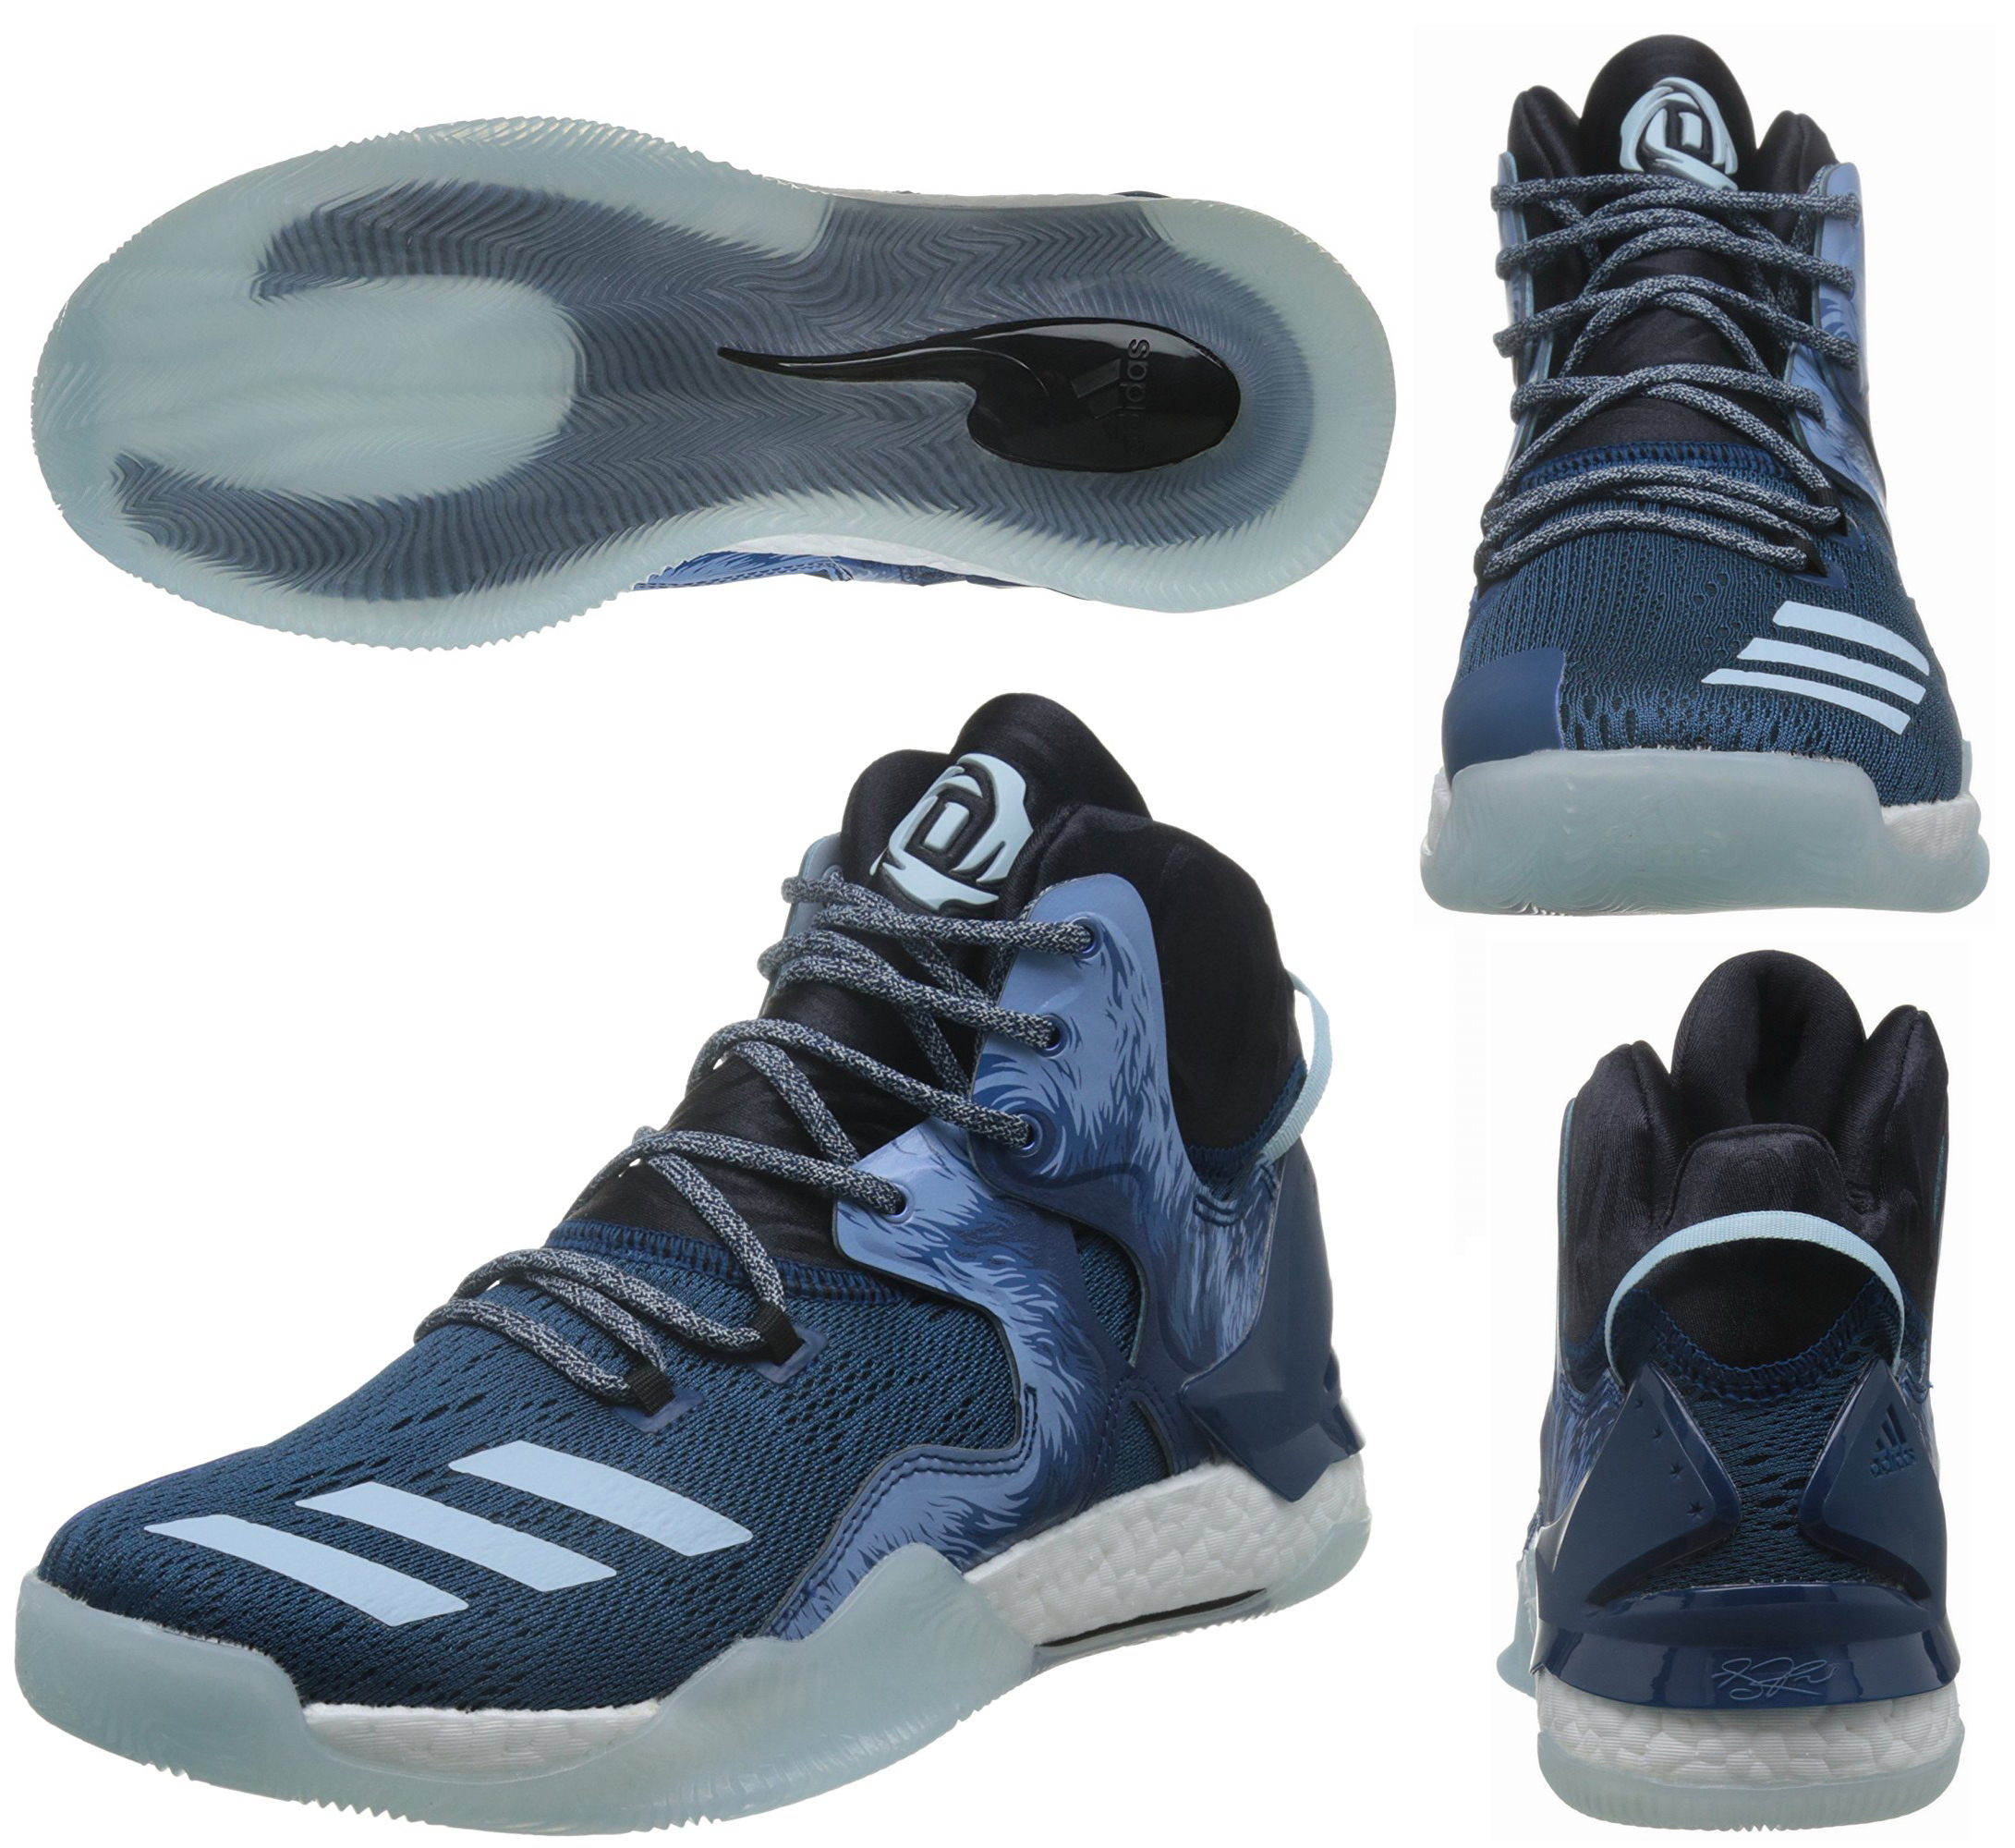 outlet store 06893 a792d Adidas D Rose 7 Boost buty koszykarskie - 44 23